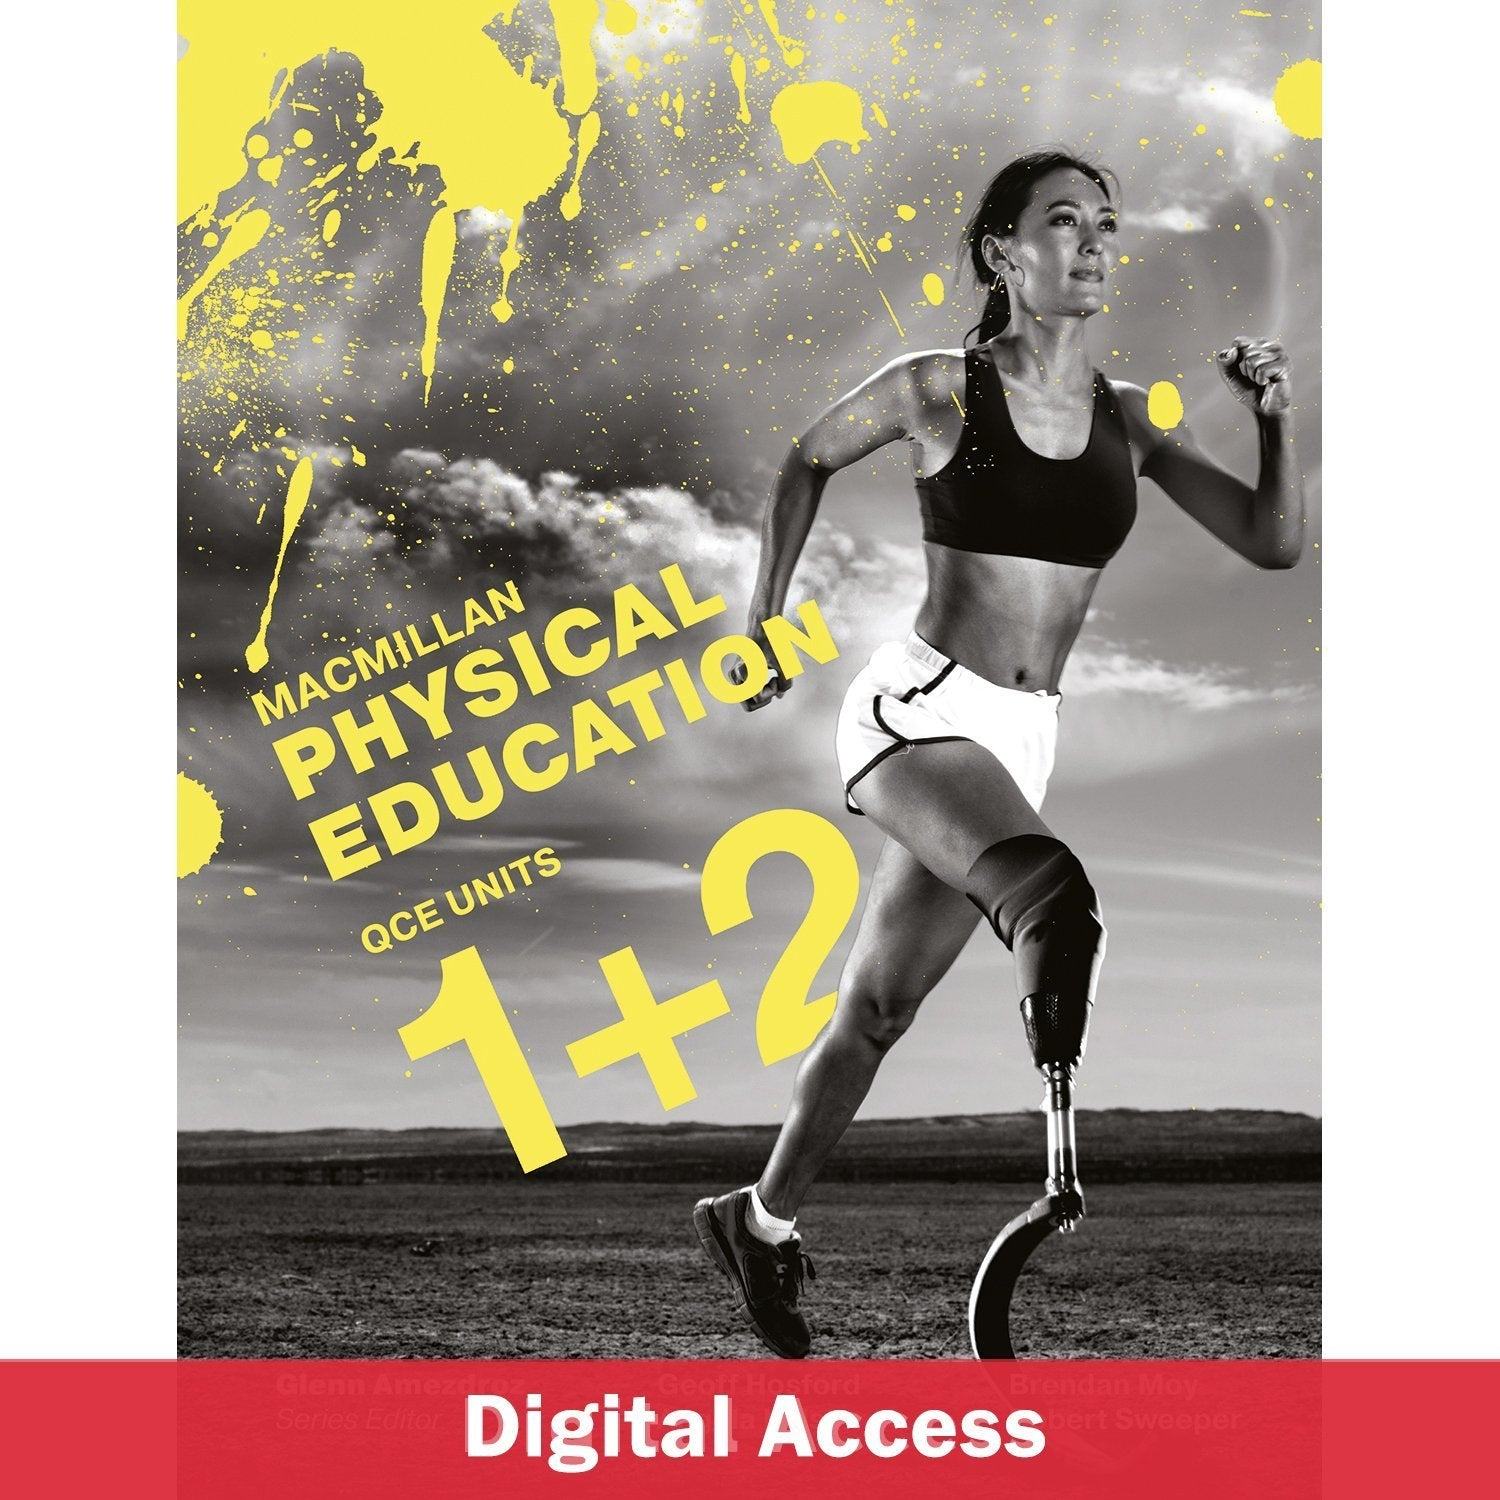 Macmillan Physical Education QCE Units 1&2 Student Digital access